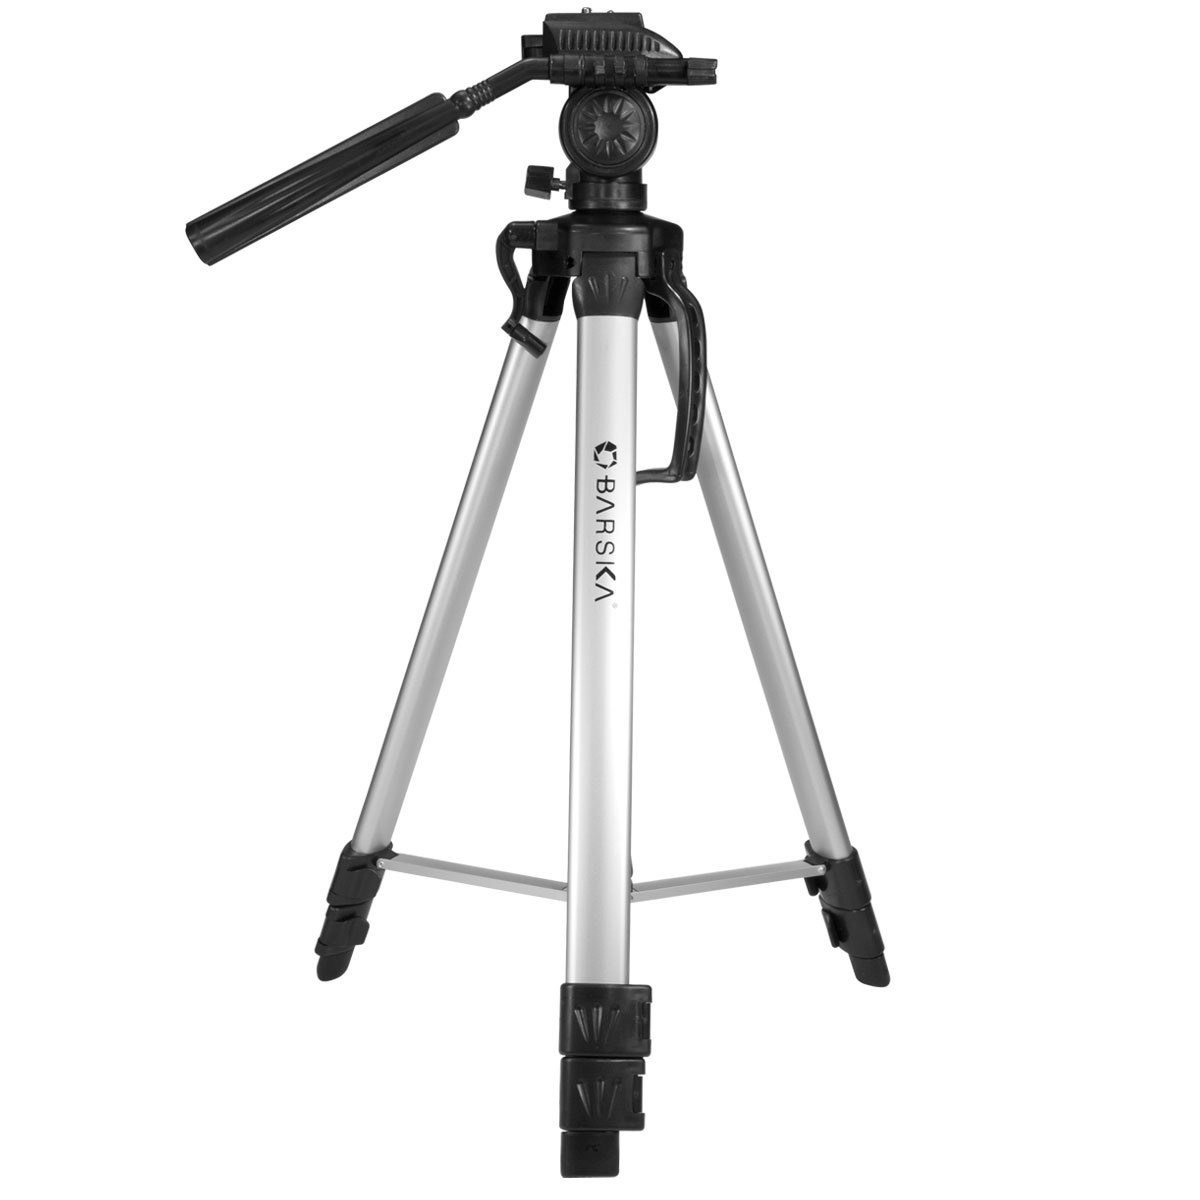 BARSKA Deluxe Tripod Extendable to 63.4'' w/ Carrying Case